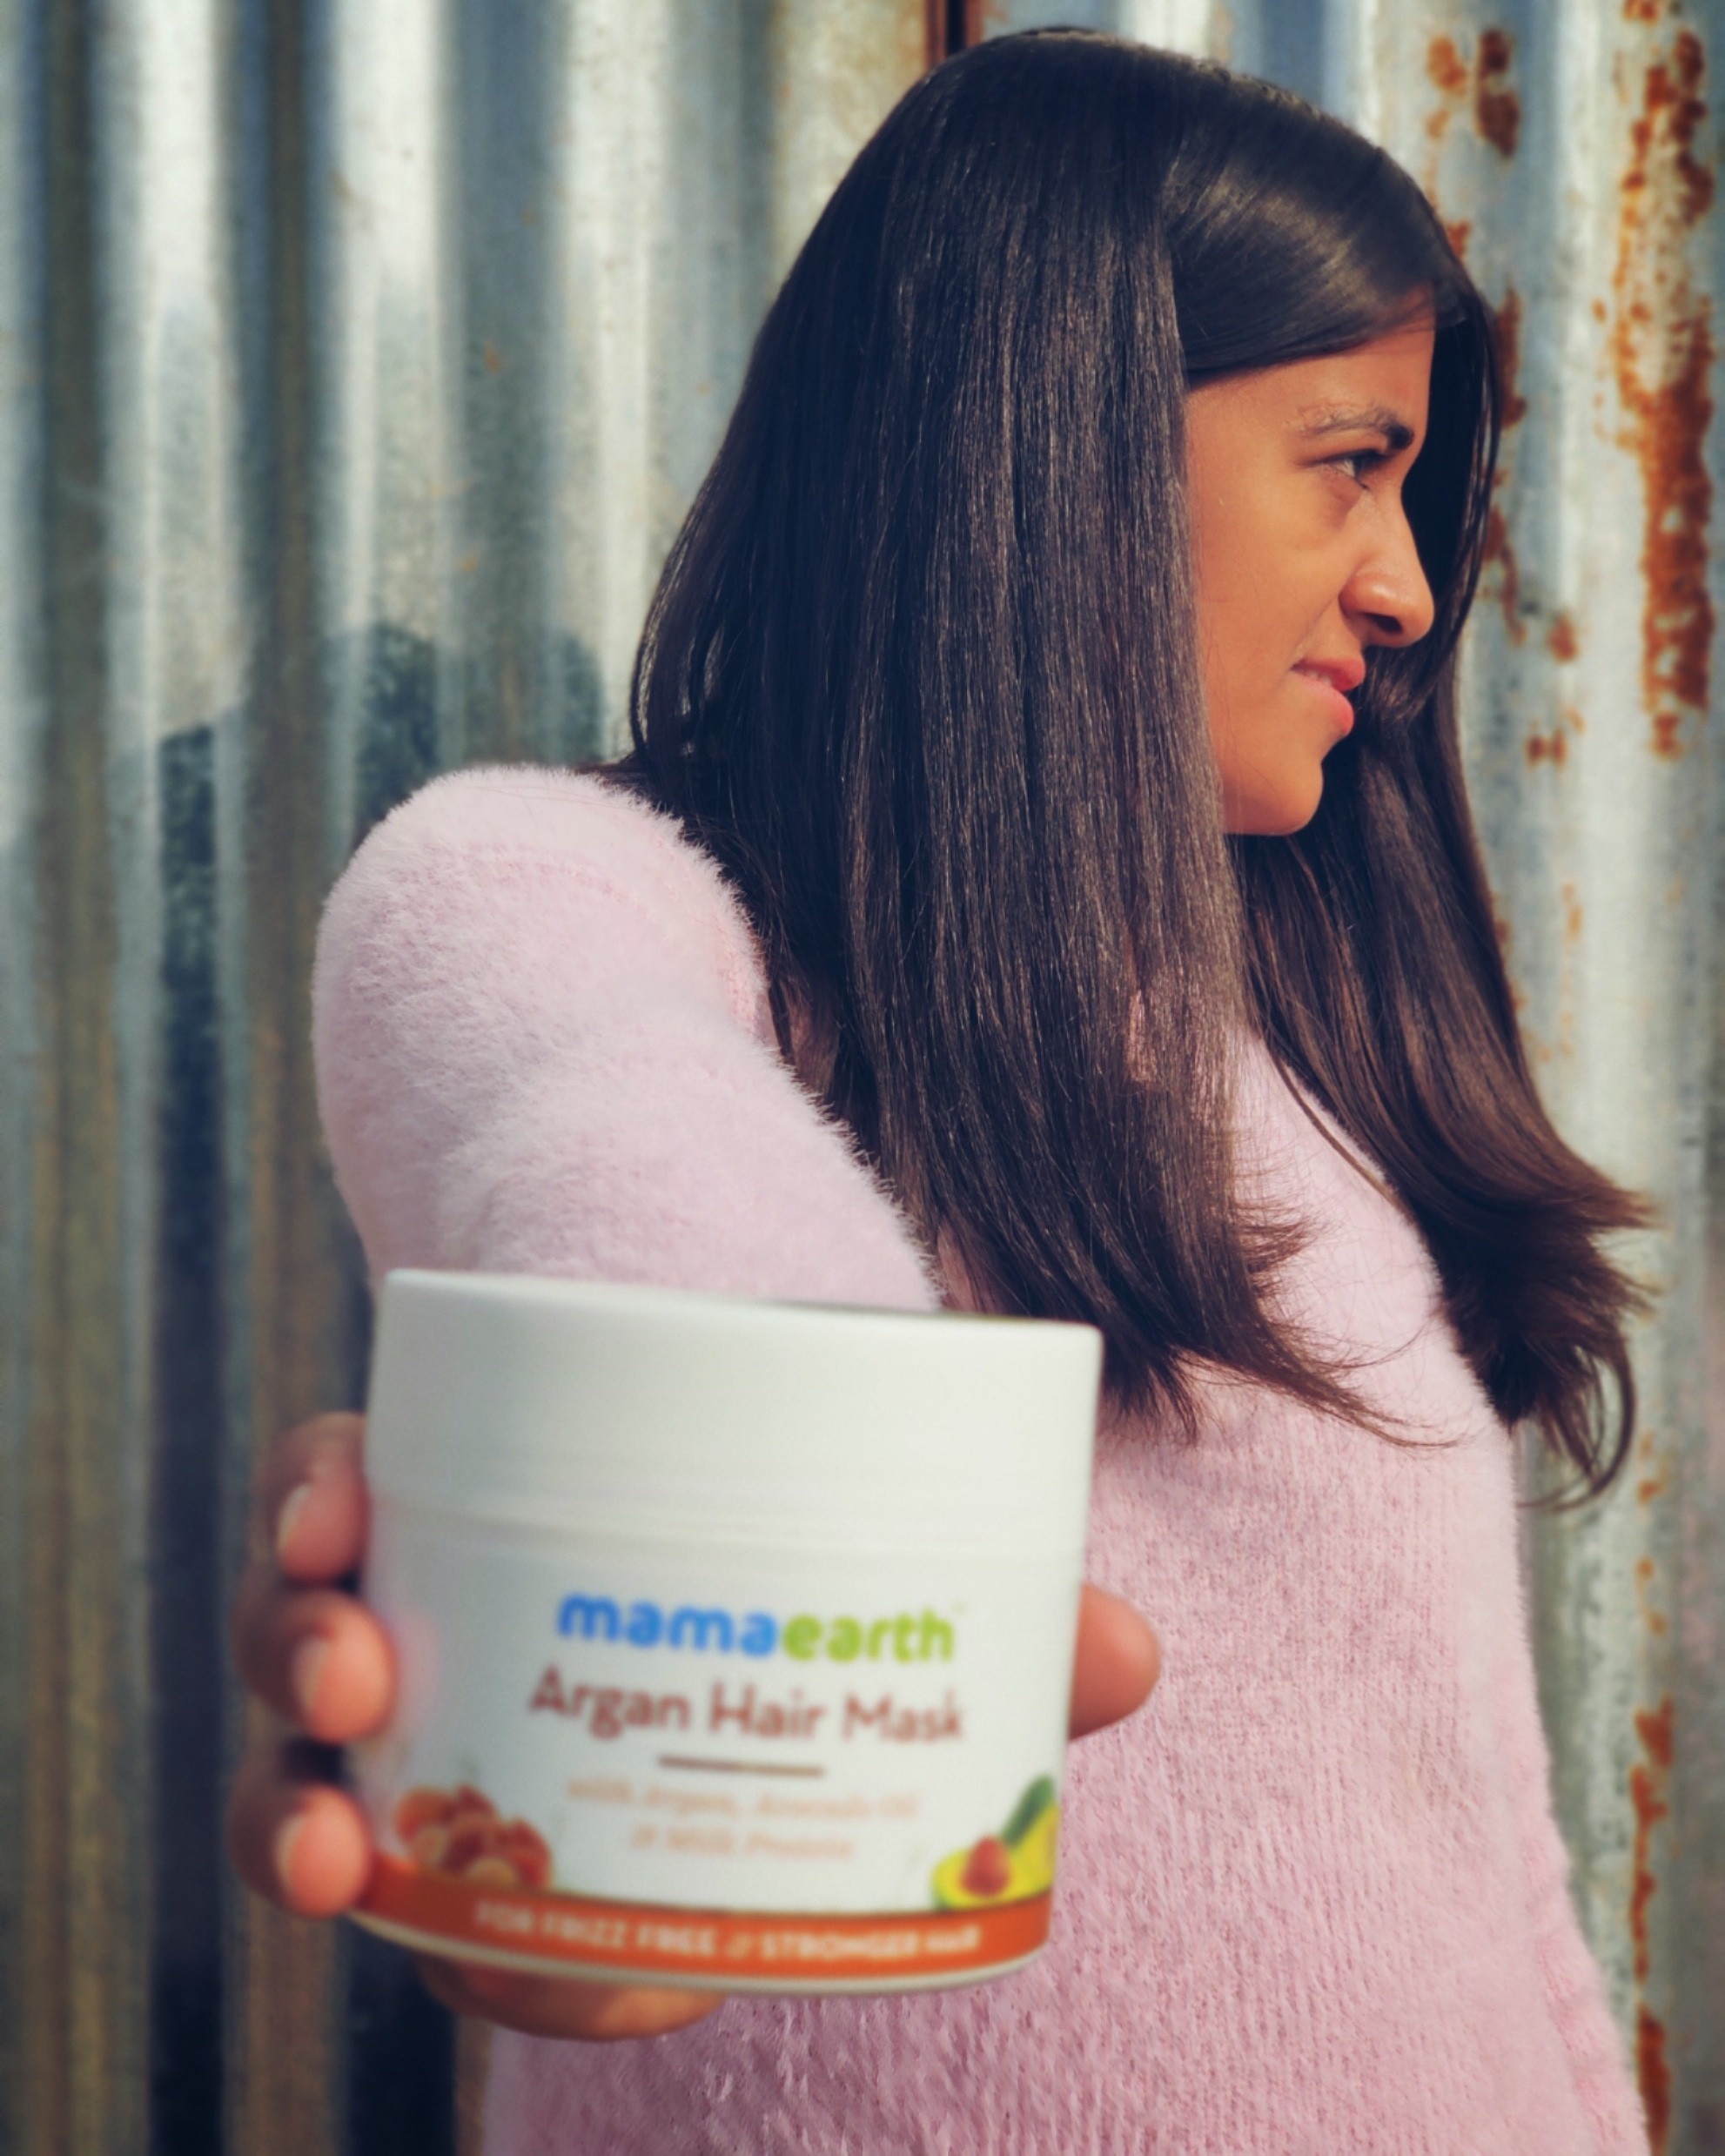 Mamaearth Argan Hair Mask-Best mask for all hair types .-By lekhnee_choubisa